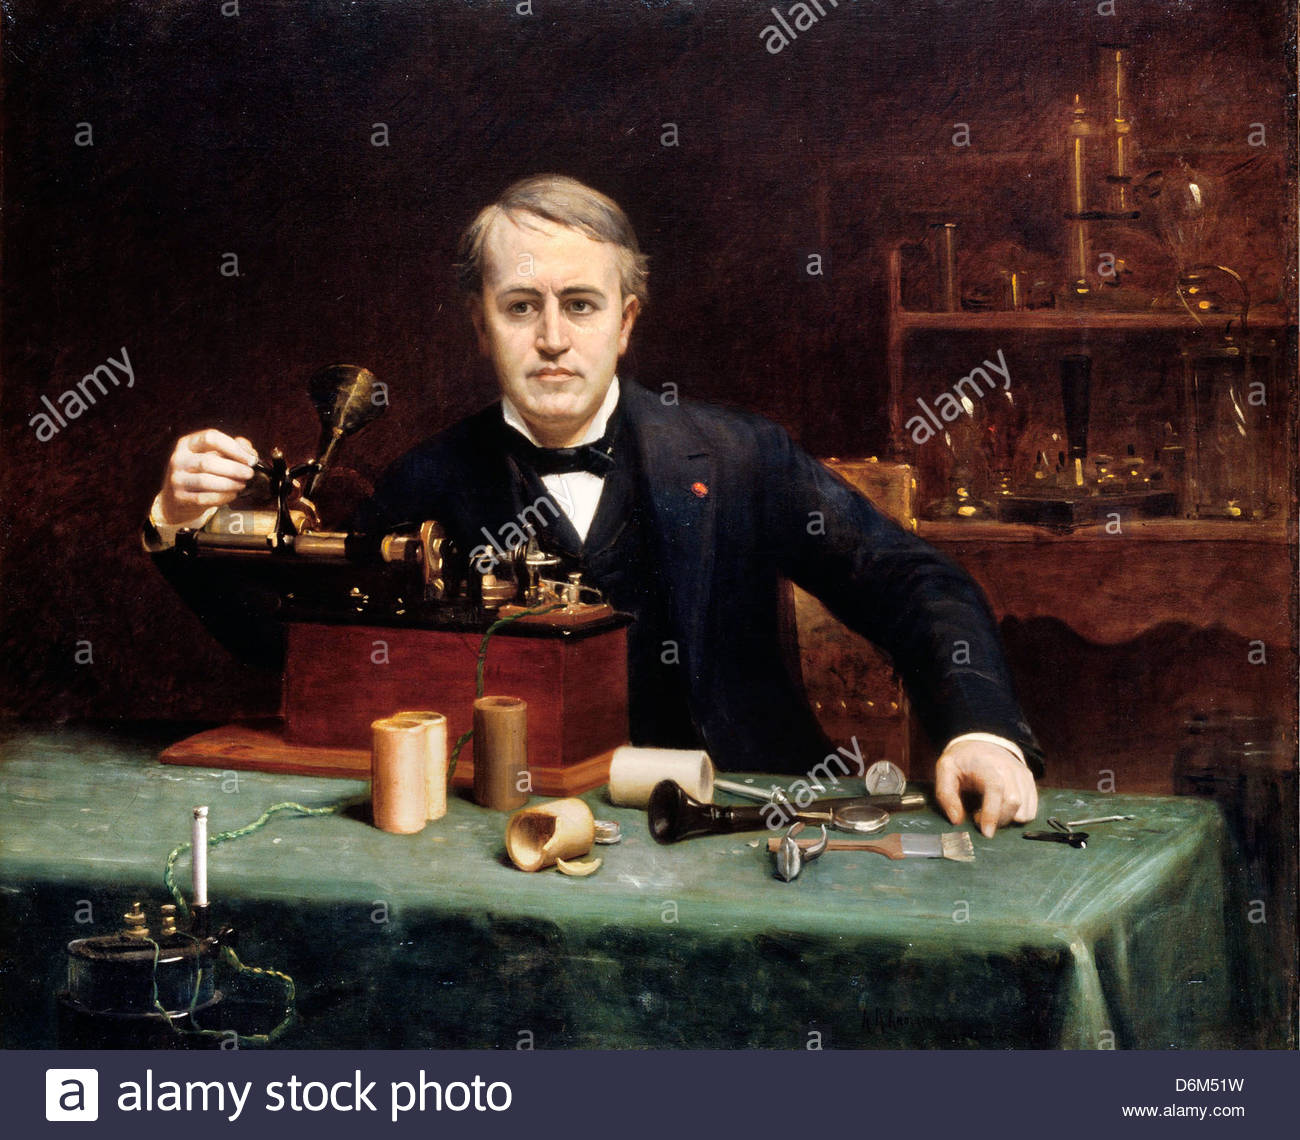 Thomas Alva Edison Stock Photos Thomas Alva Edison Stock Images 1300x1140